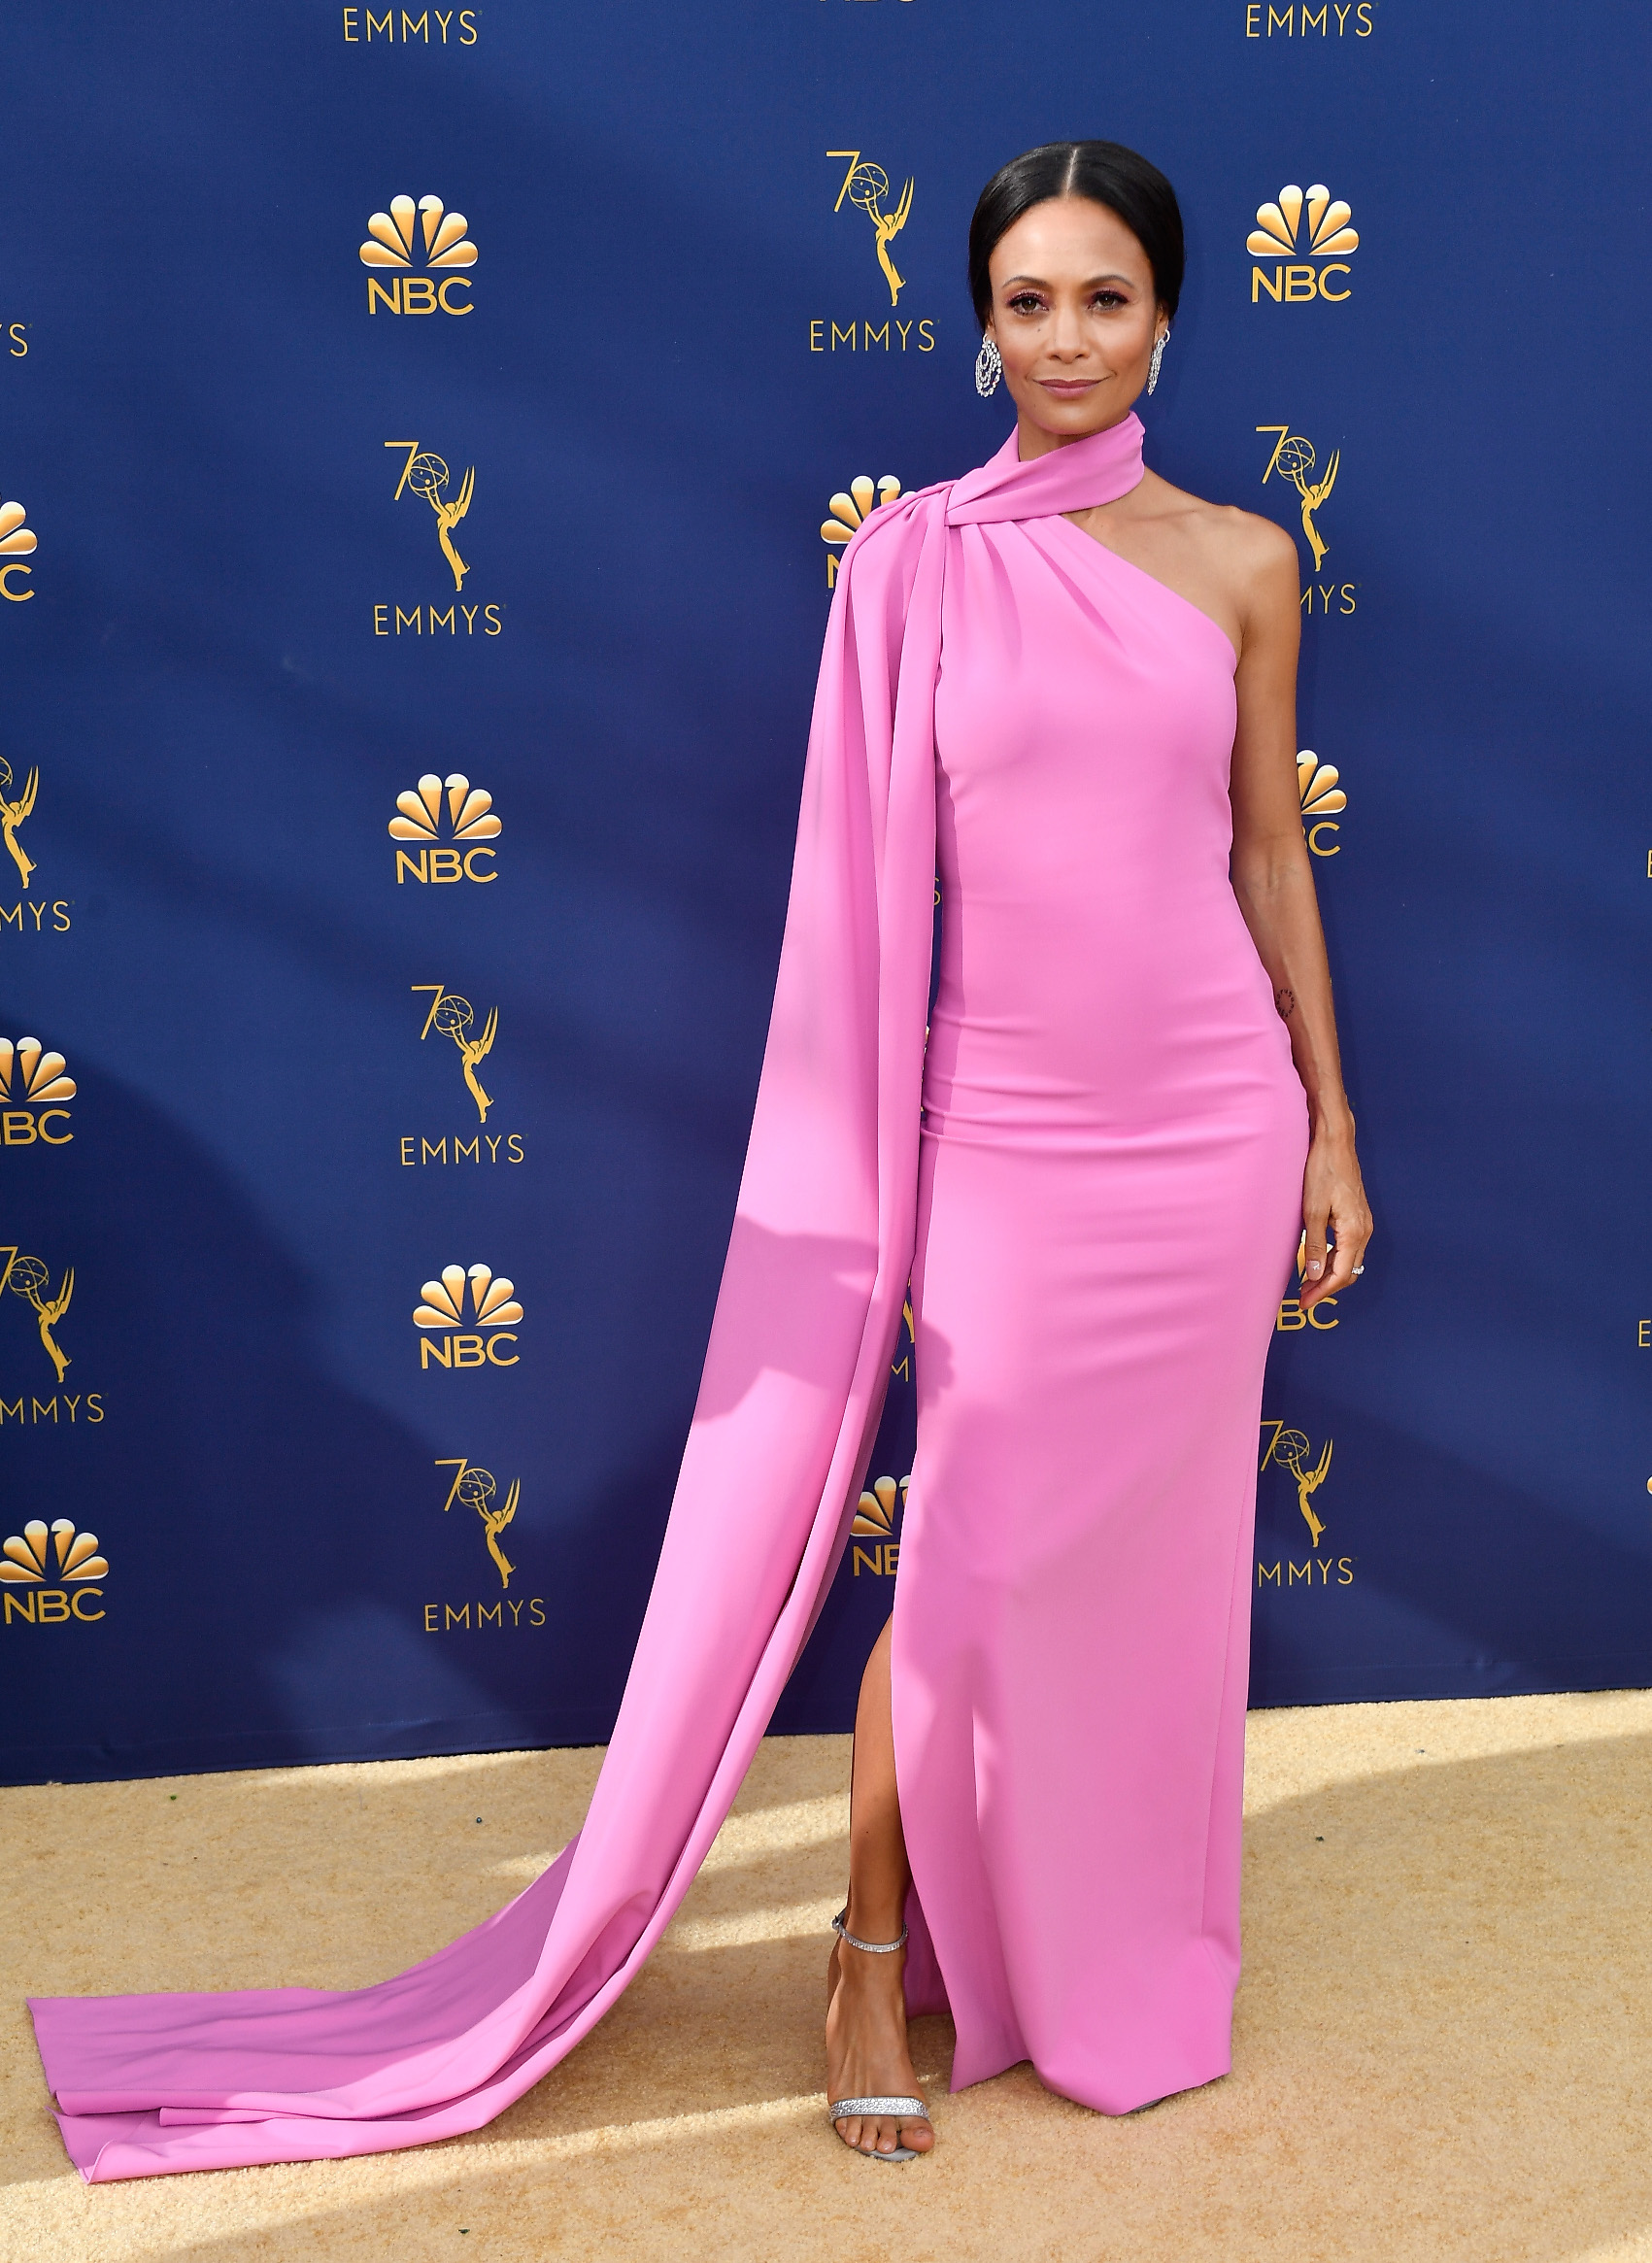 LOS ANGELES, CA - SEPTEMBER 17:  Thandie Newton attends the 70th Emmy Awards at Microsoft Theater on September 17, 2018 in Los Angeles, California.  (Photo by Frazer Harrison/Getty Images)